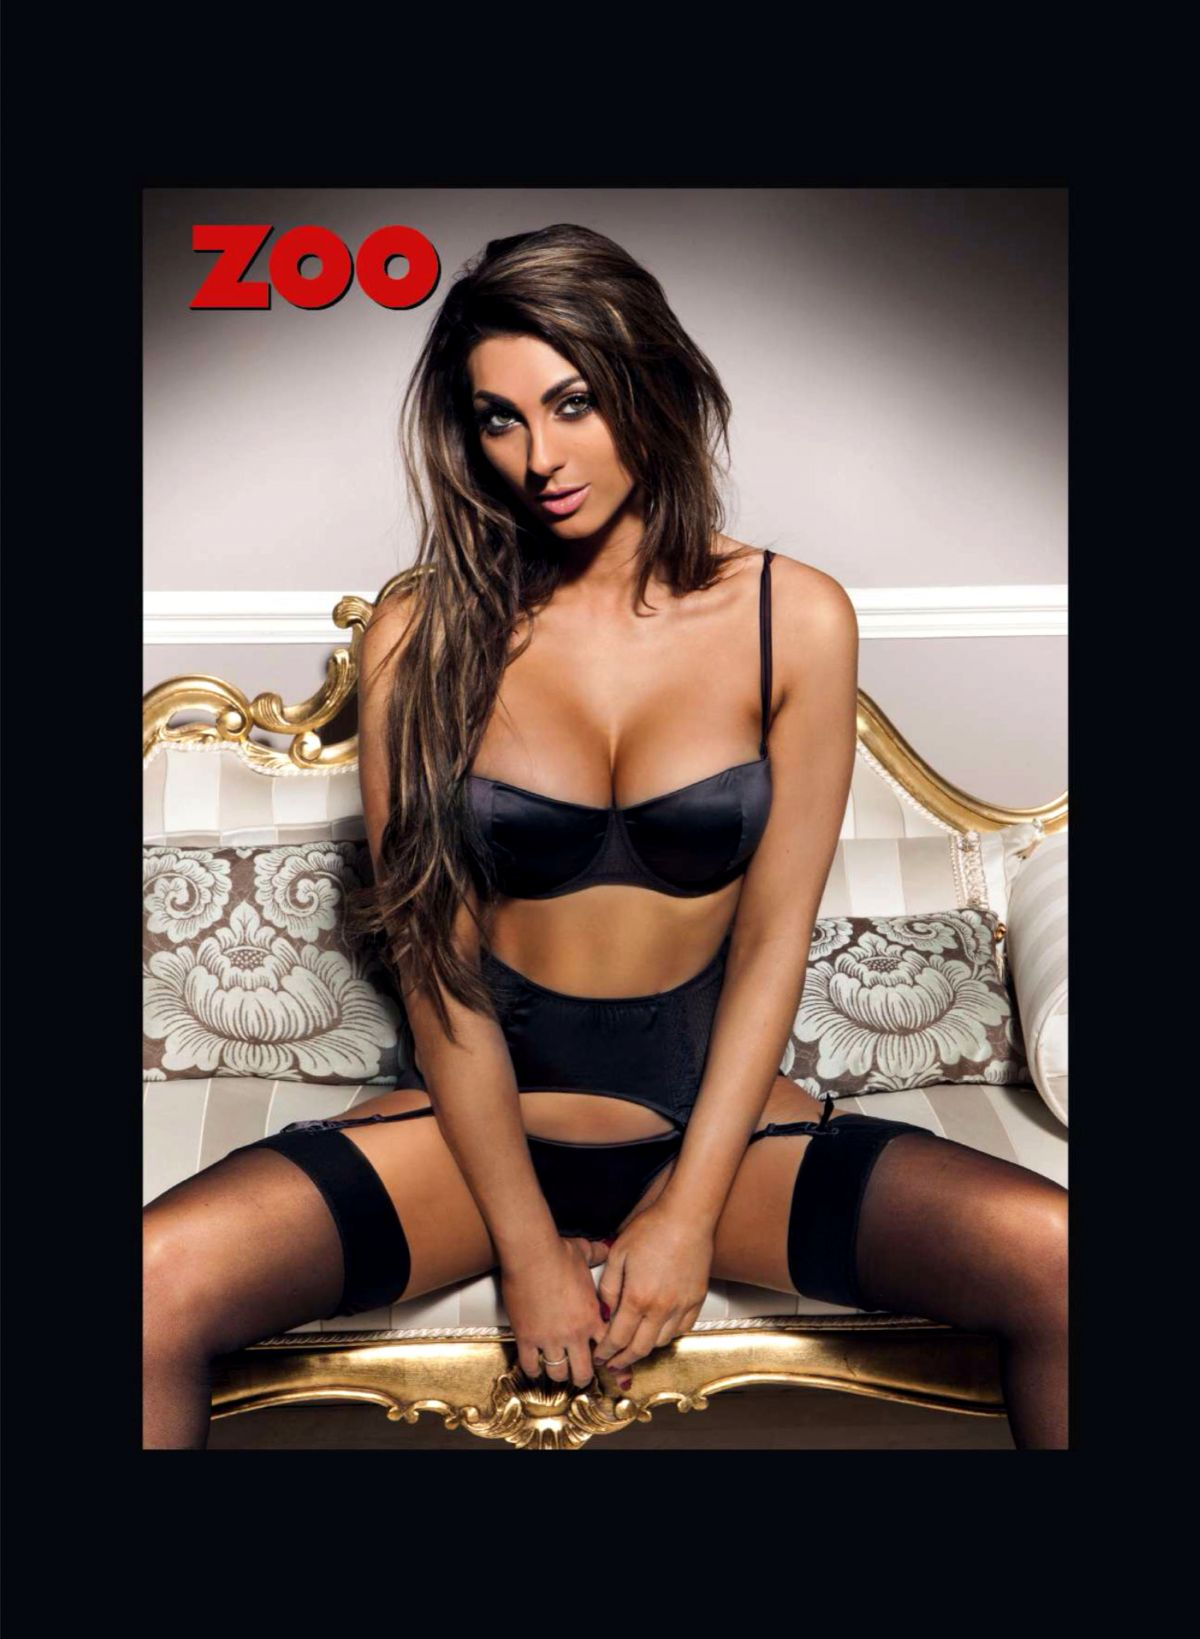 luisa-zissman-in-zoo-magazine-20th-february-2014-issue_14.jpg - 164.51 KB